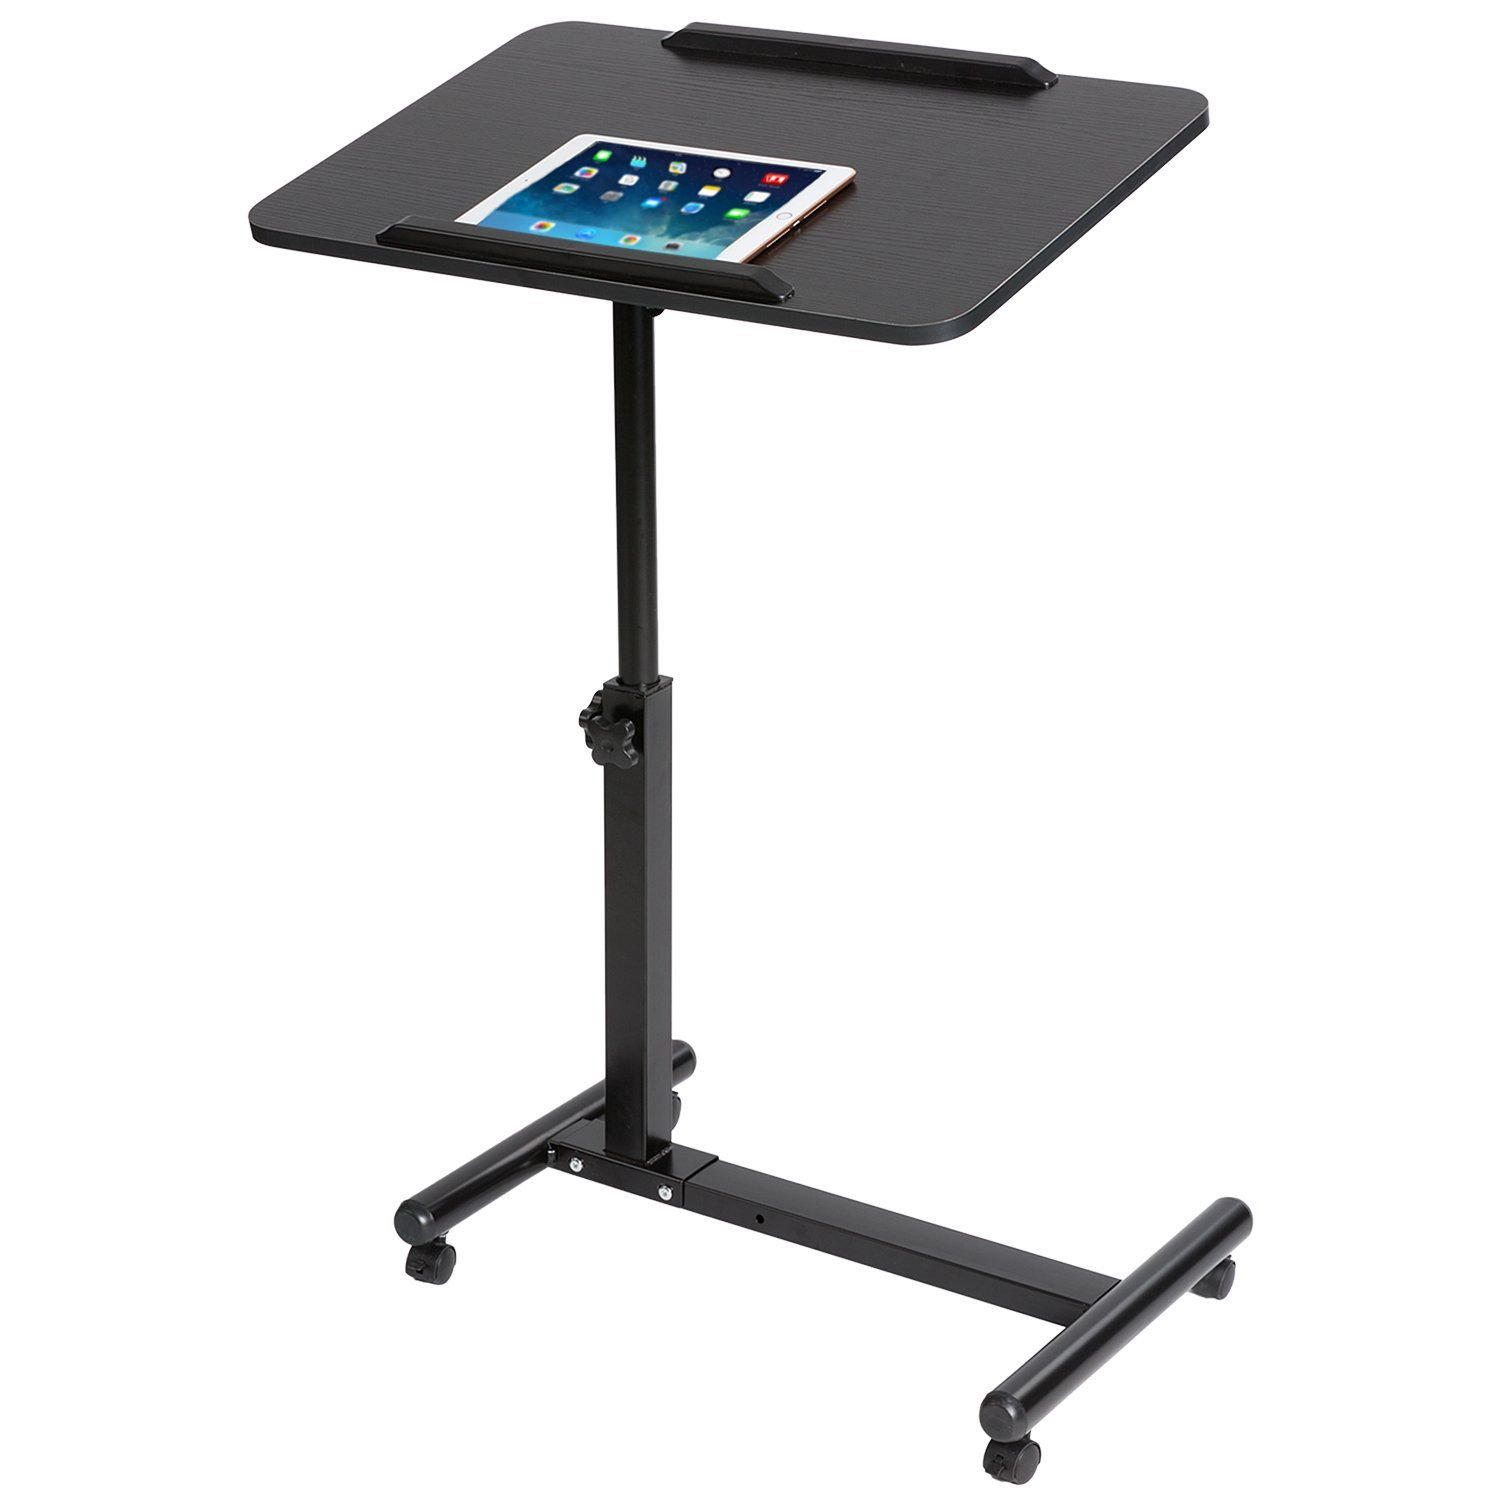 DOEWORKS Laptop Table Height Adjustable Laptop Stand,Moveable Notebook Stand,Black Tray Side